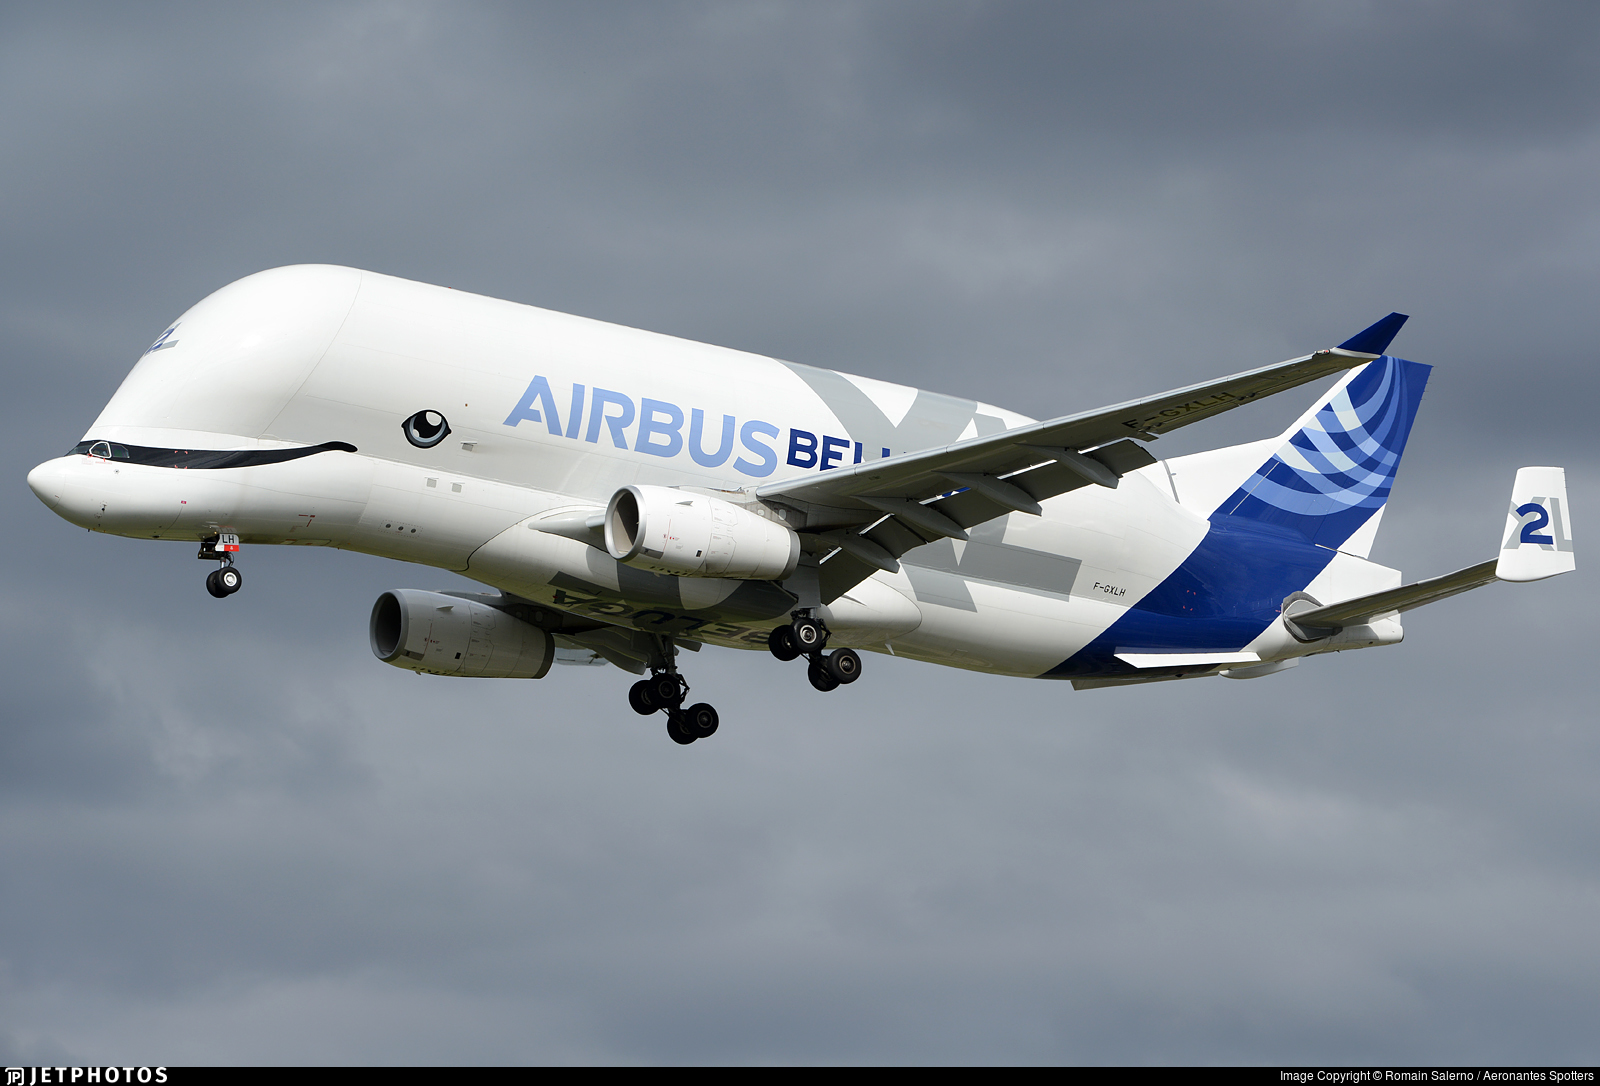 F-GXLH - Airbus A330-743L - Airbus Transport International